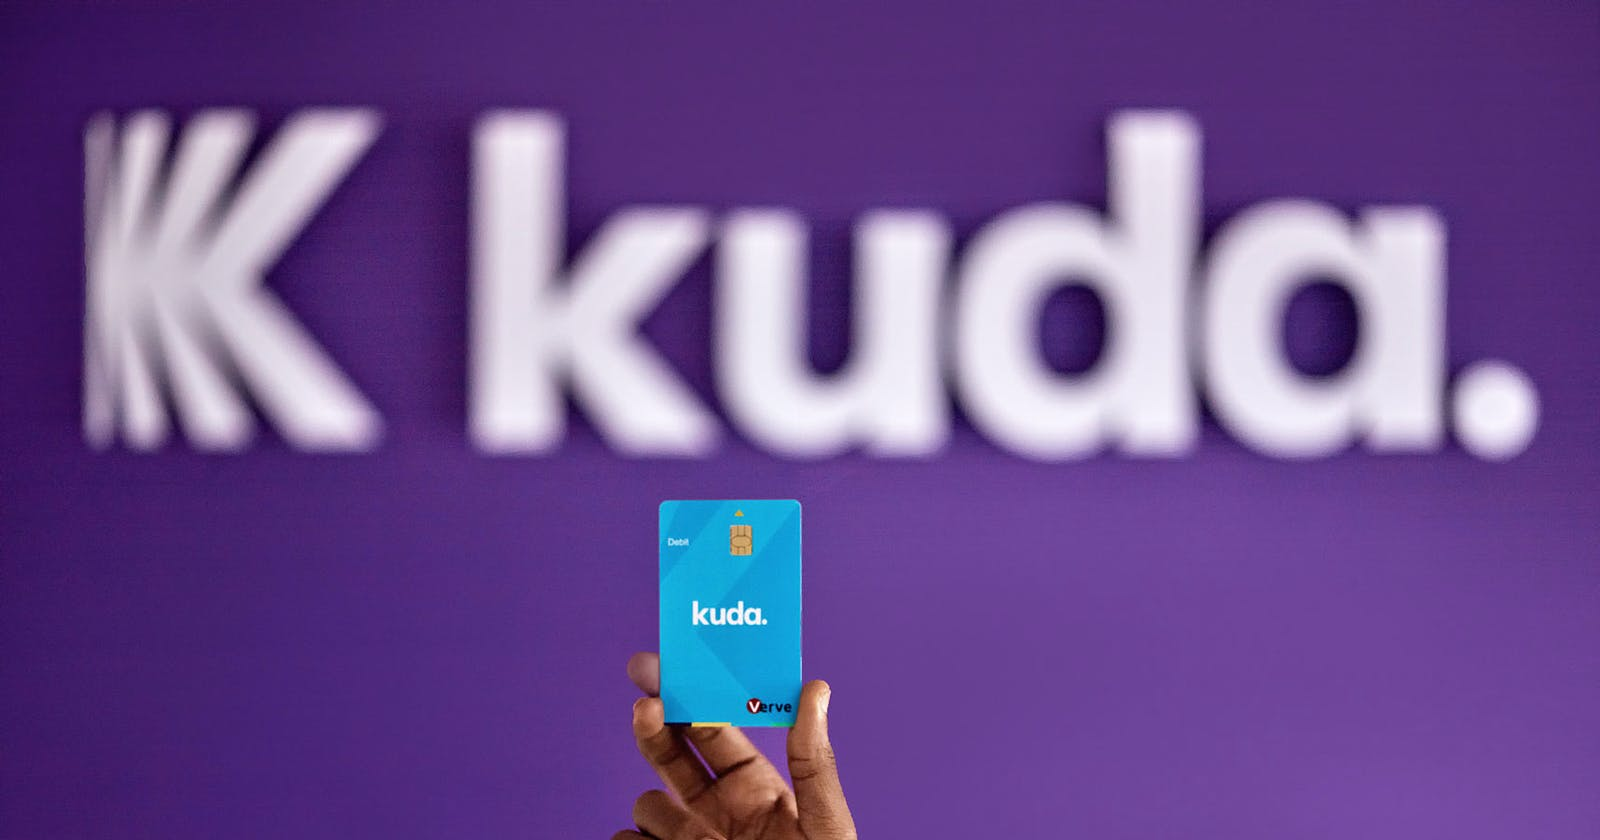 Kuda—The Bank in whom I am well pleased